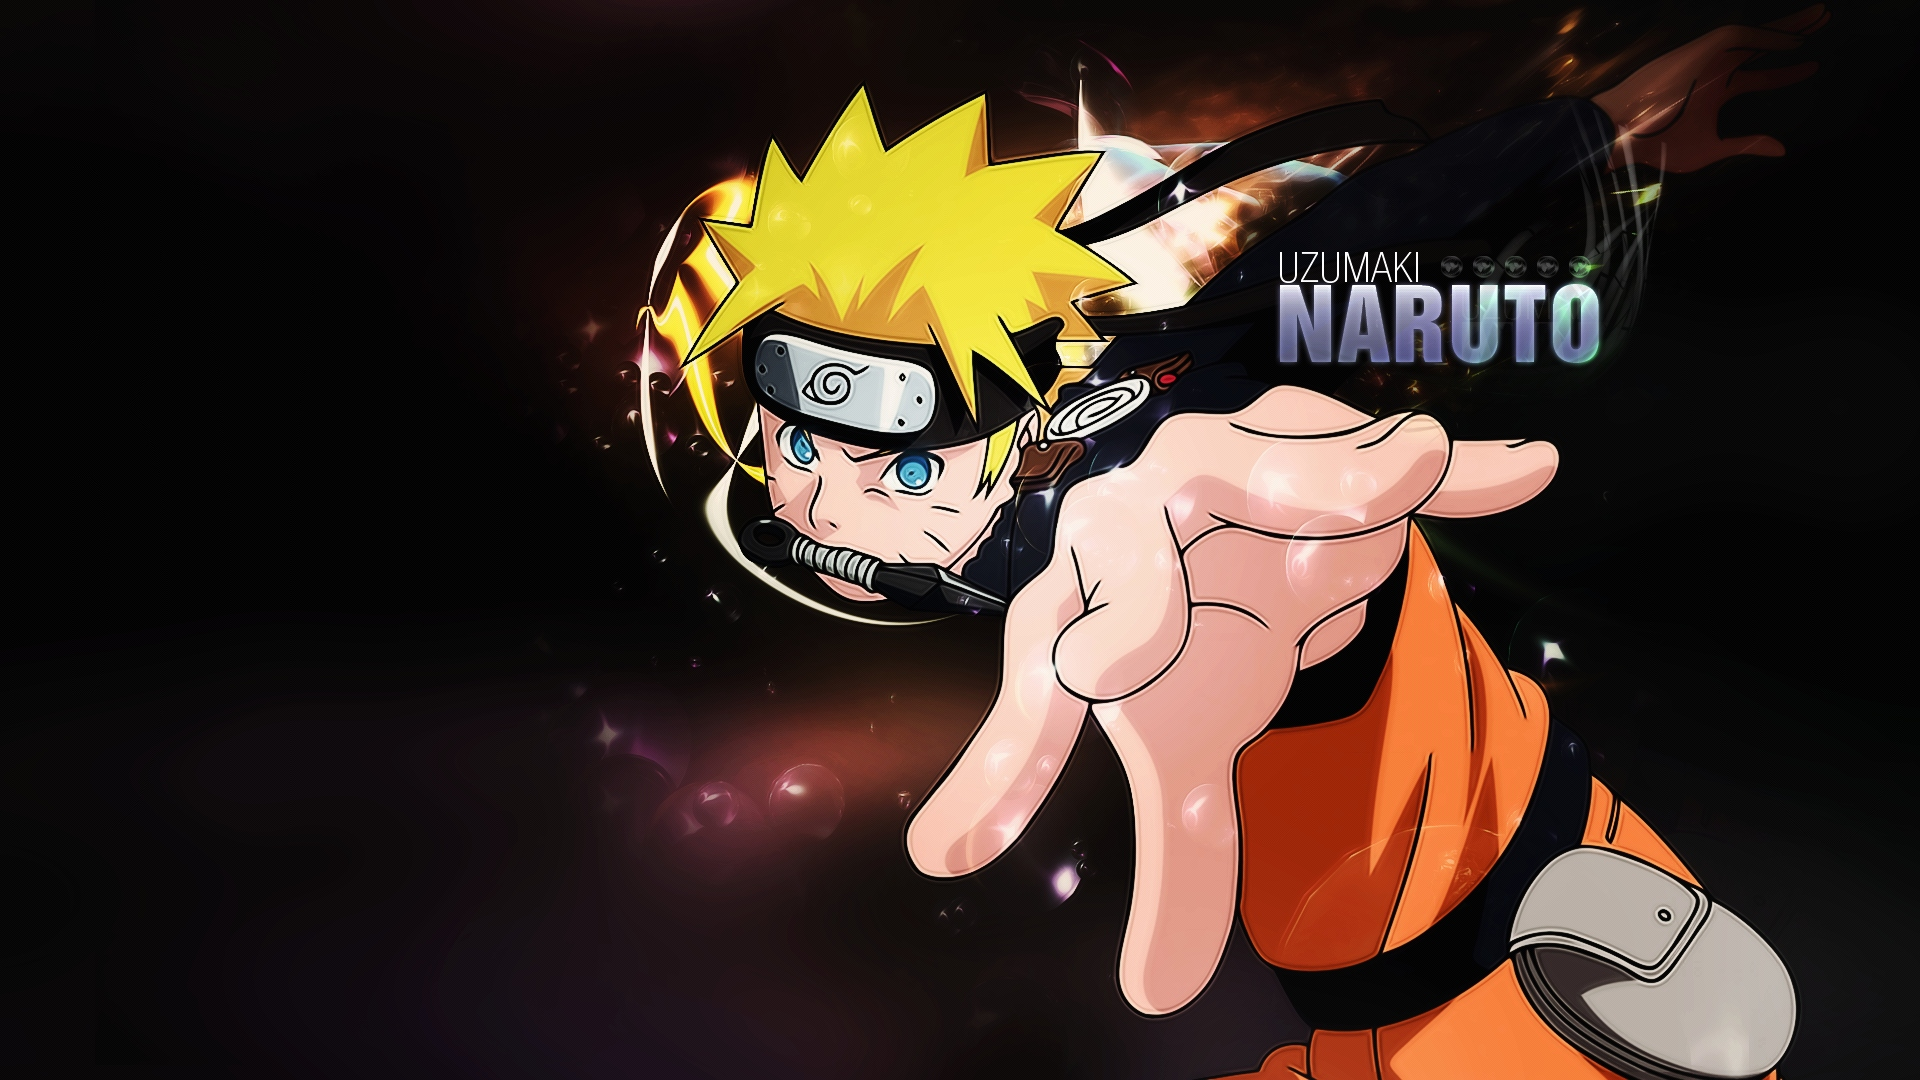 Uzumaki Naruto images Naruto wallpaper photos (25737574)